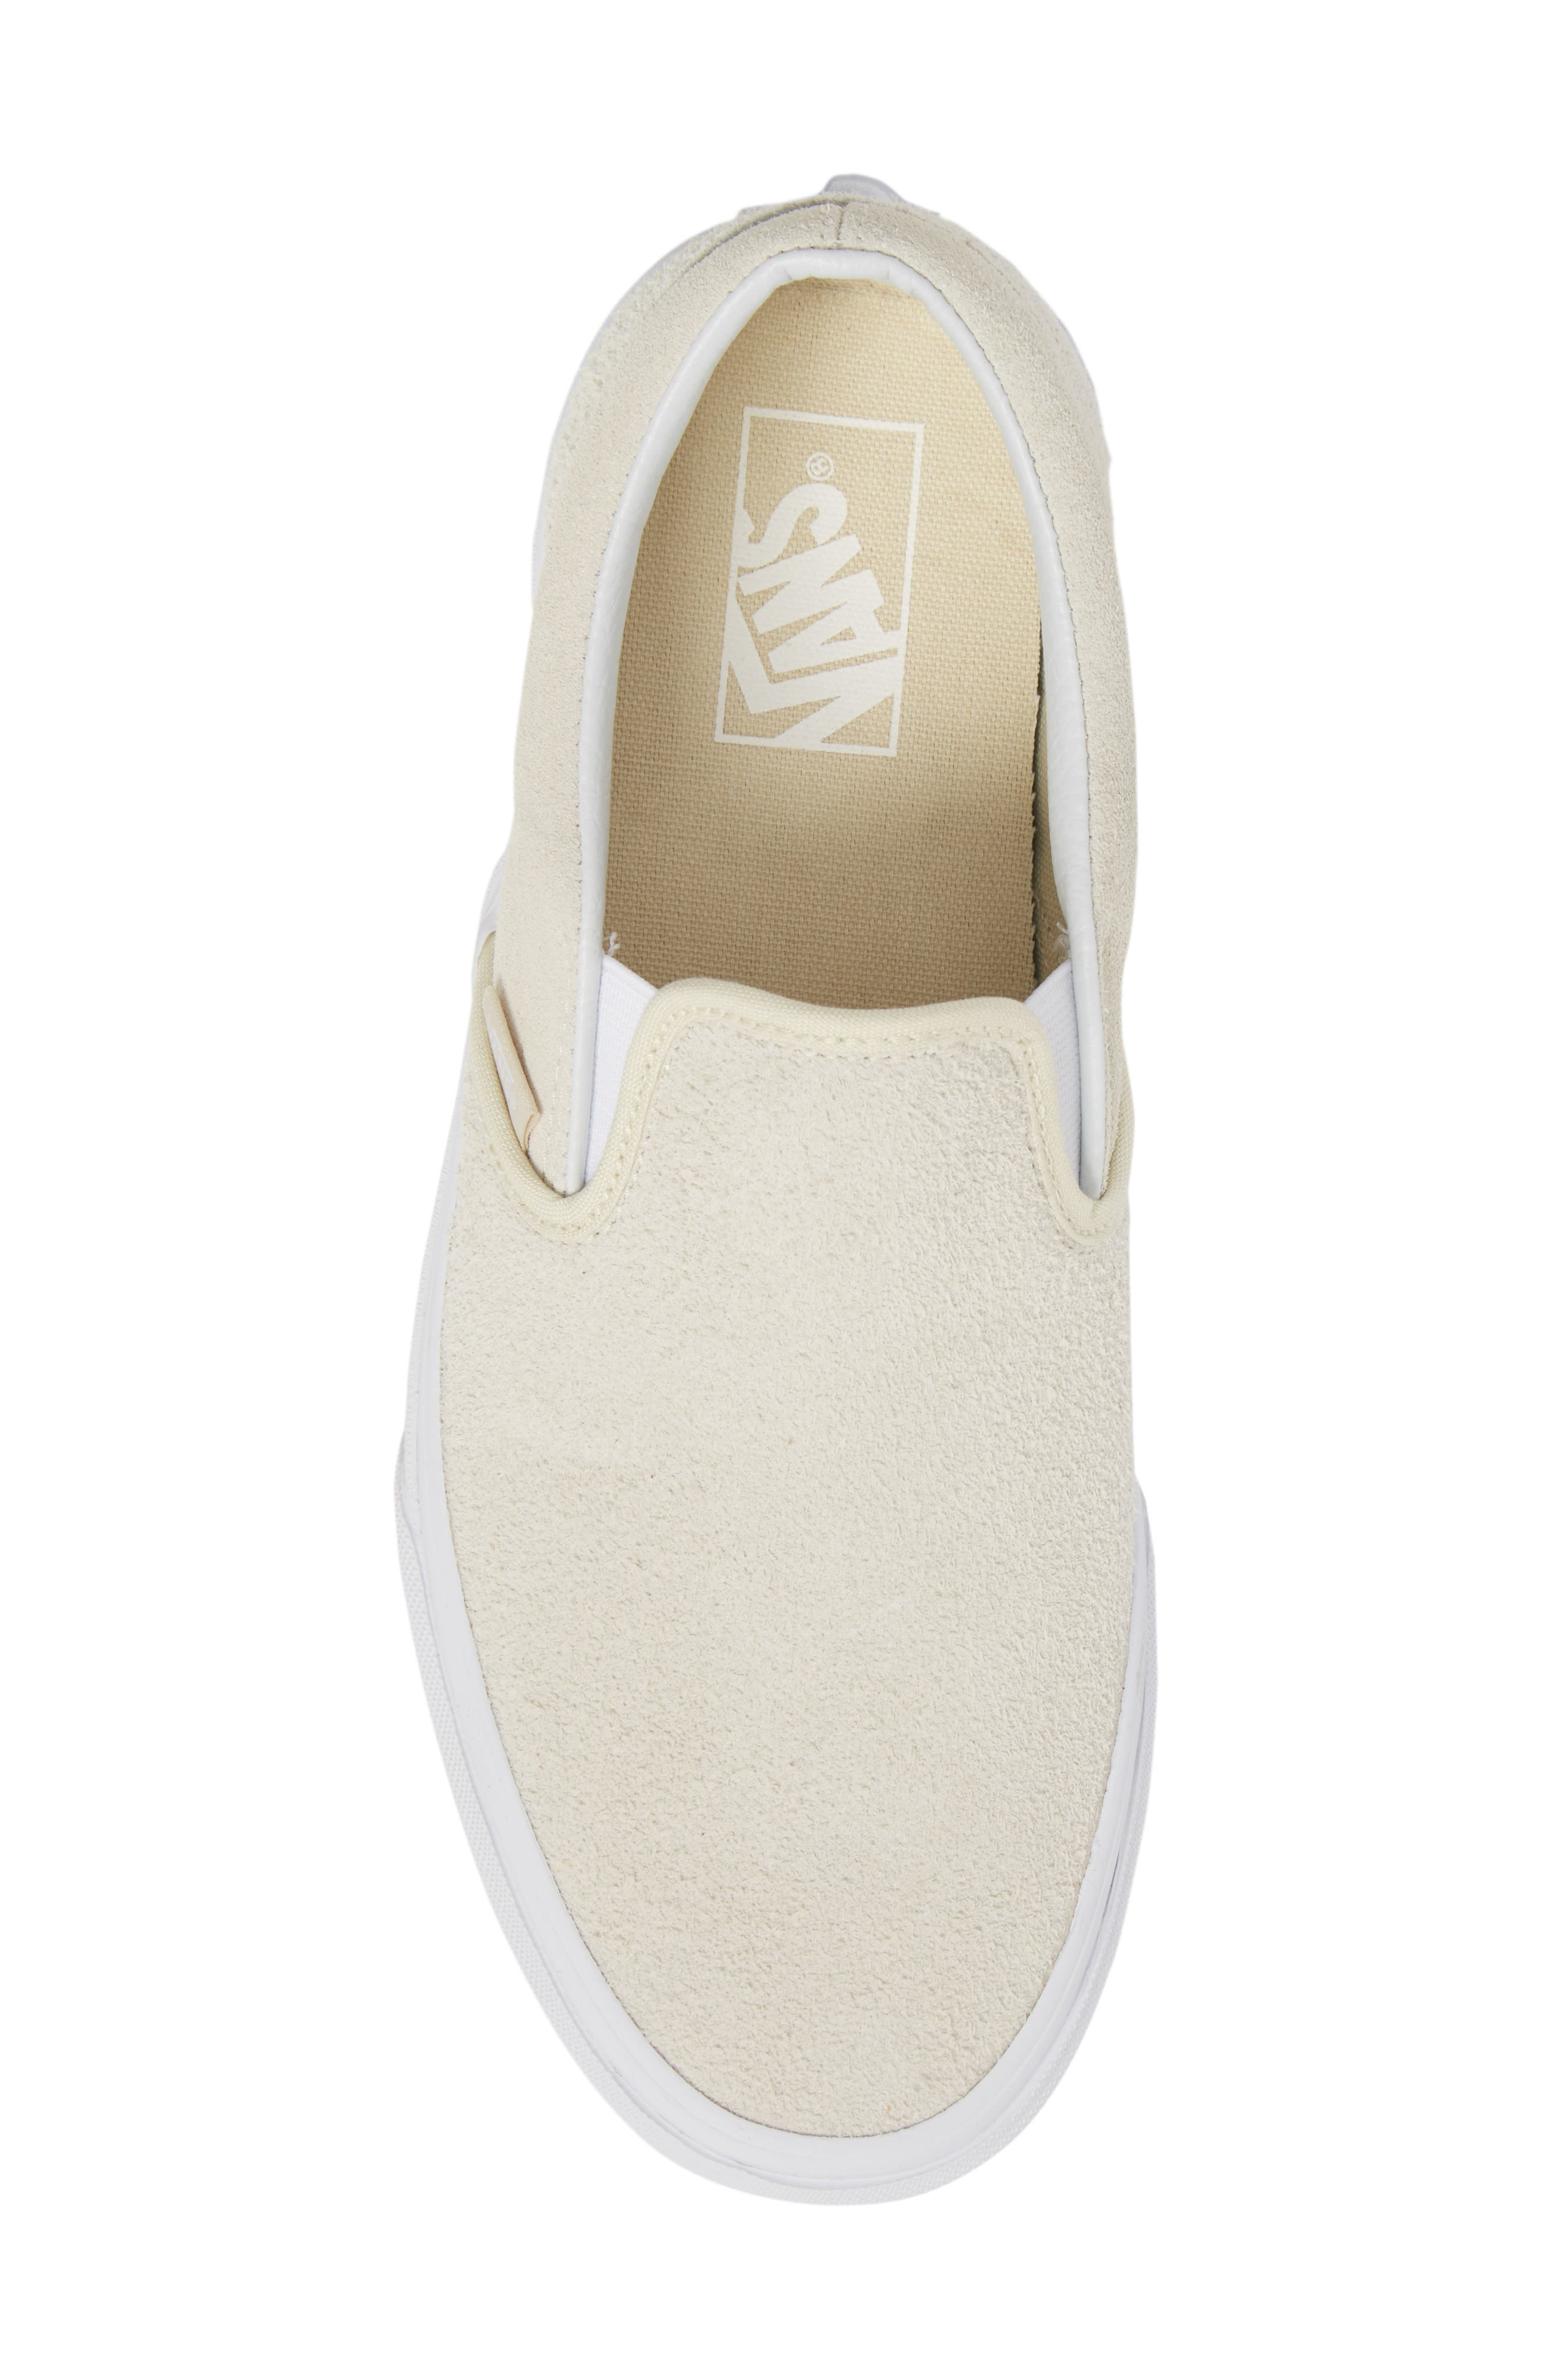 Classic Hairy Suede Slip-On Sneaker,                             Alternate thumbnail 5, color,                             Turtledove Leather